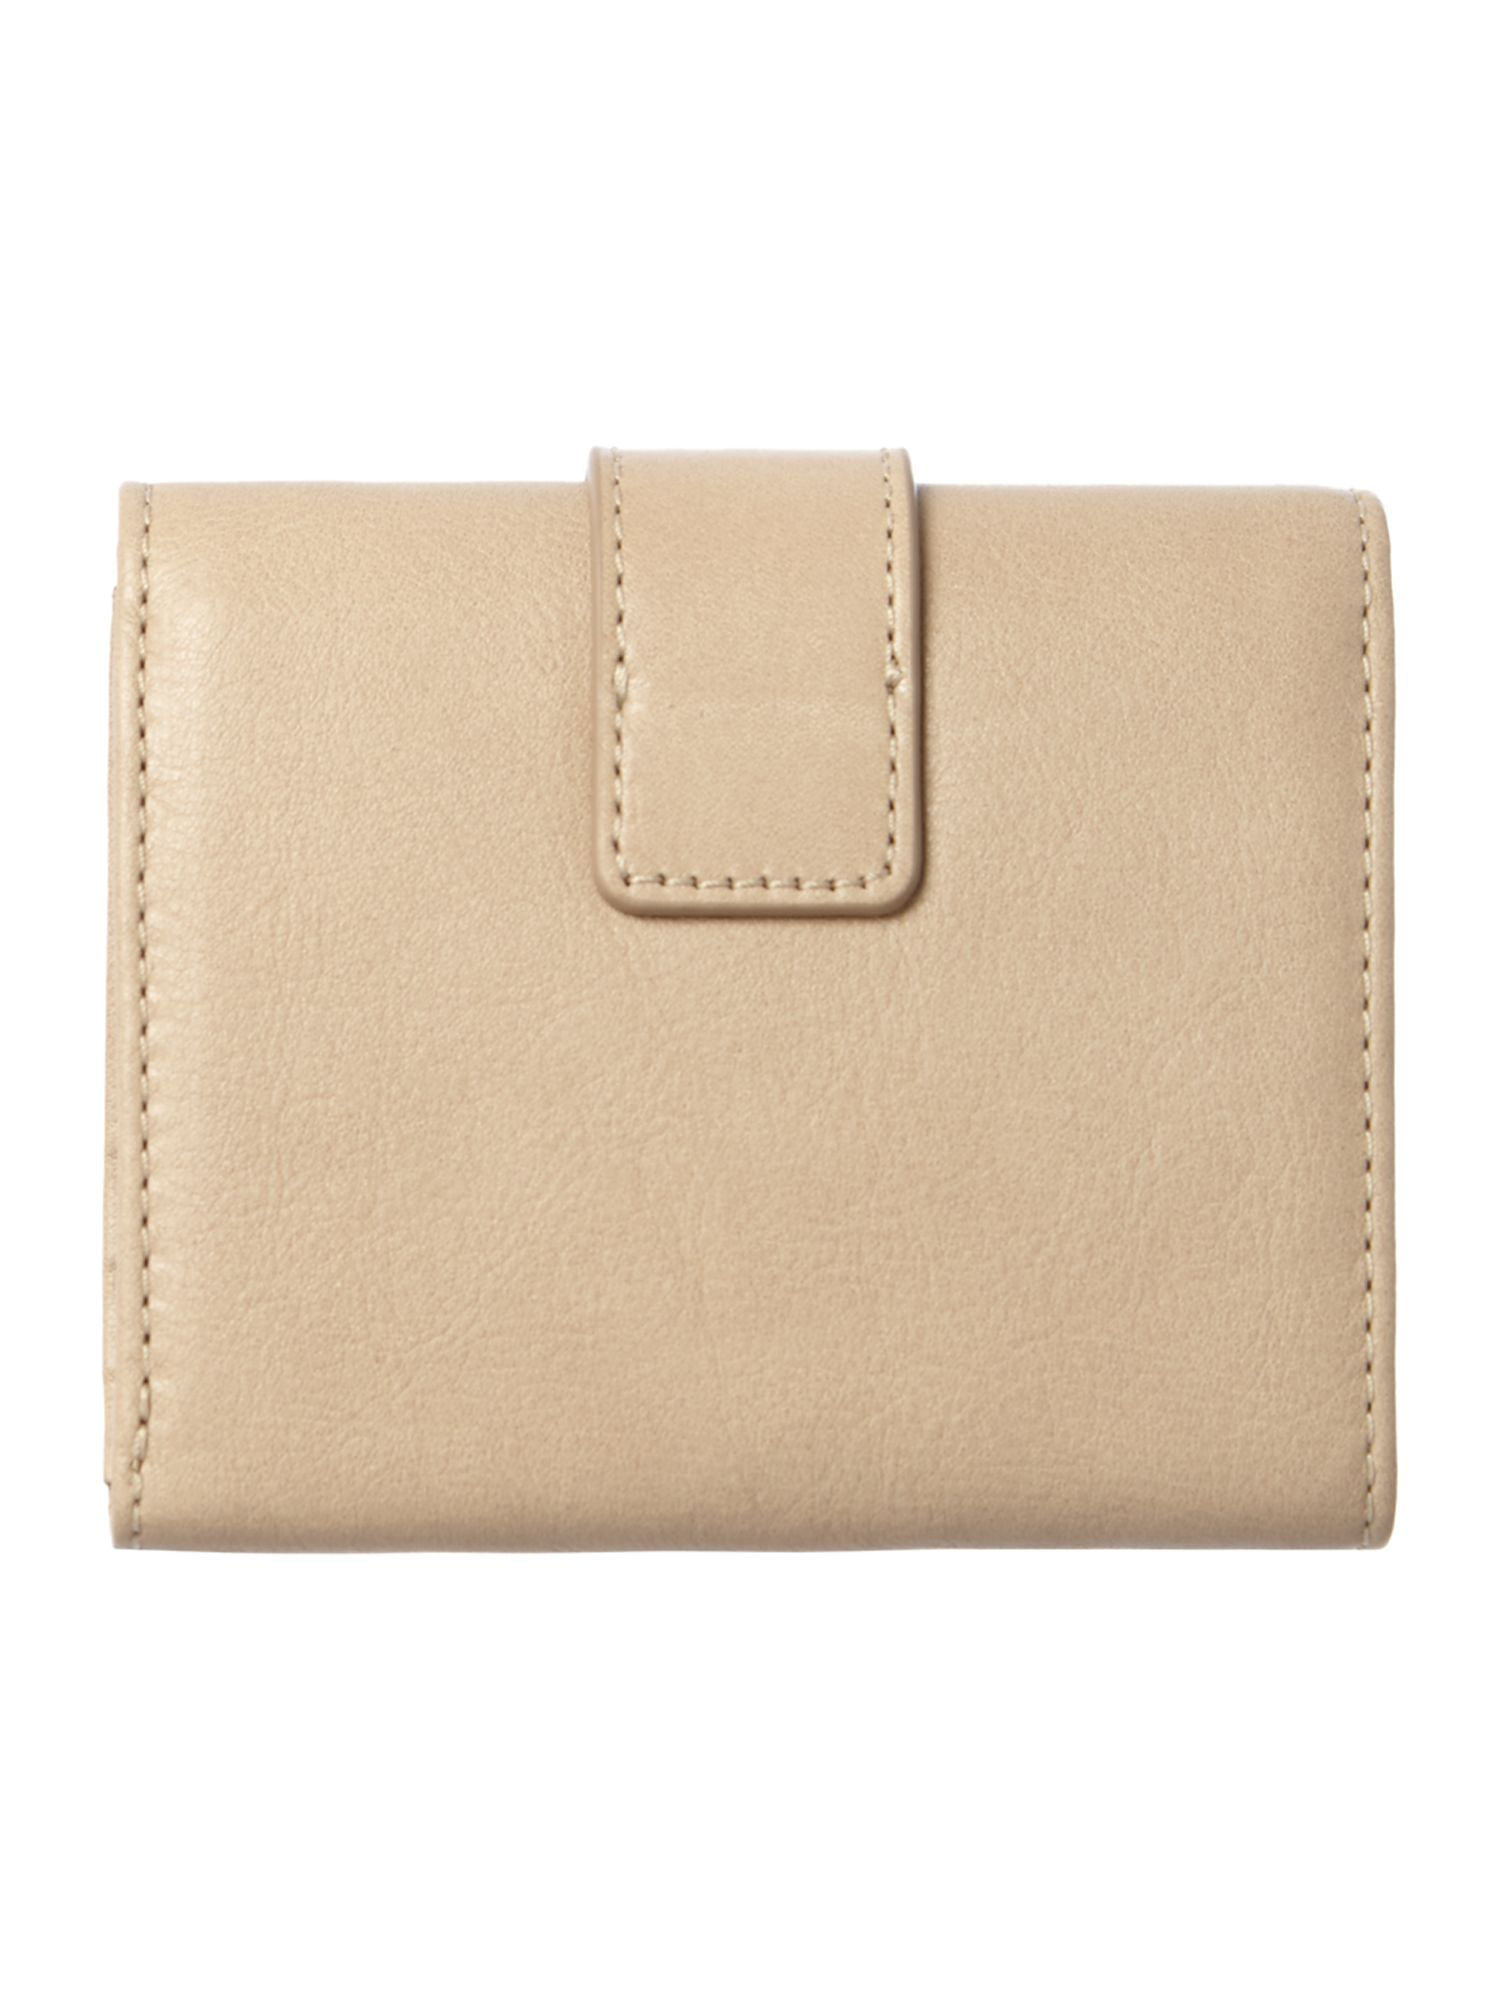 Neutral small flap over purse